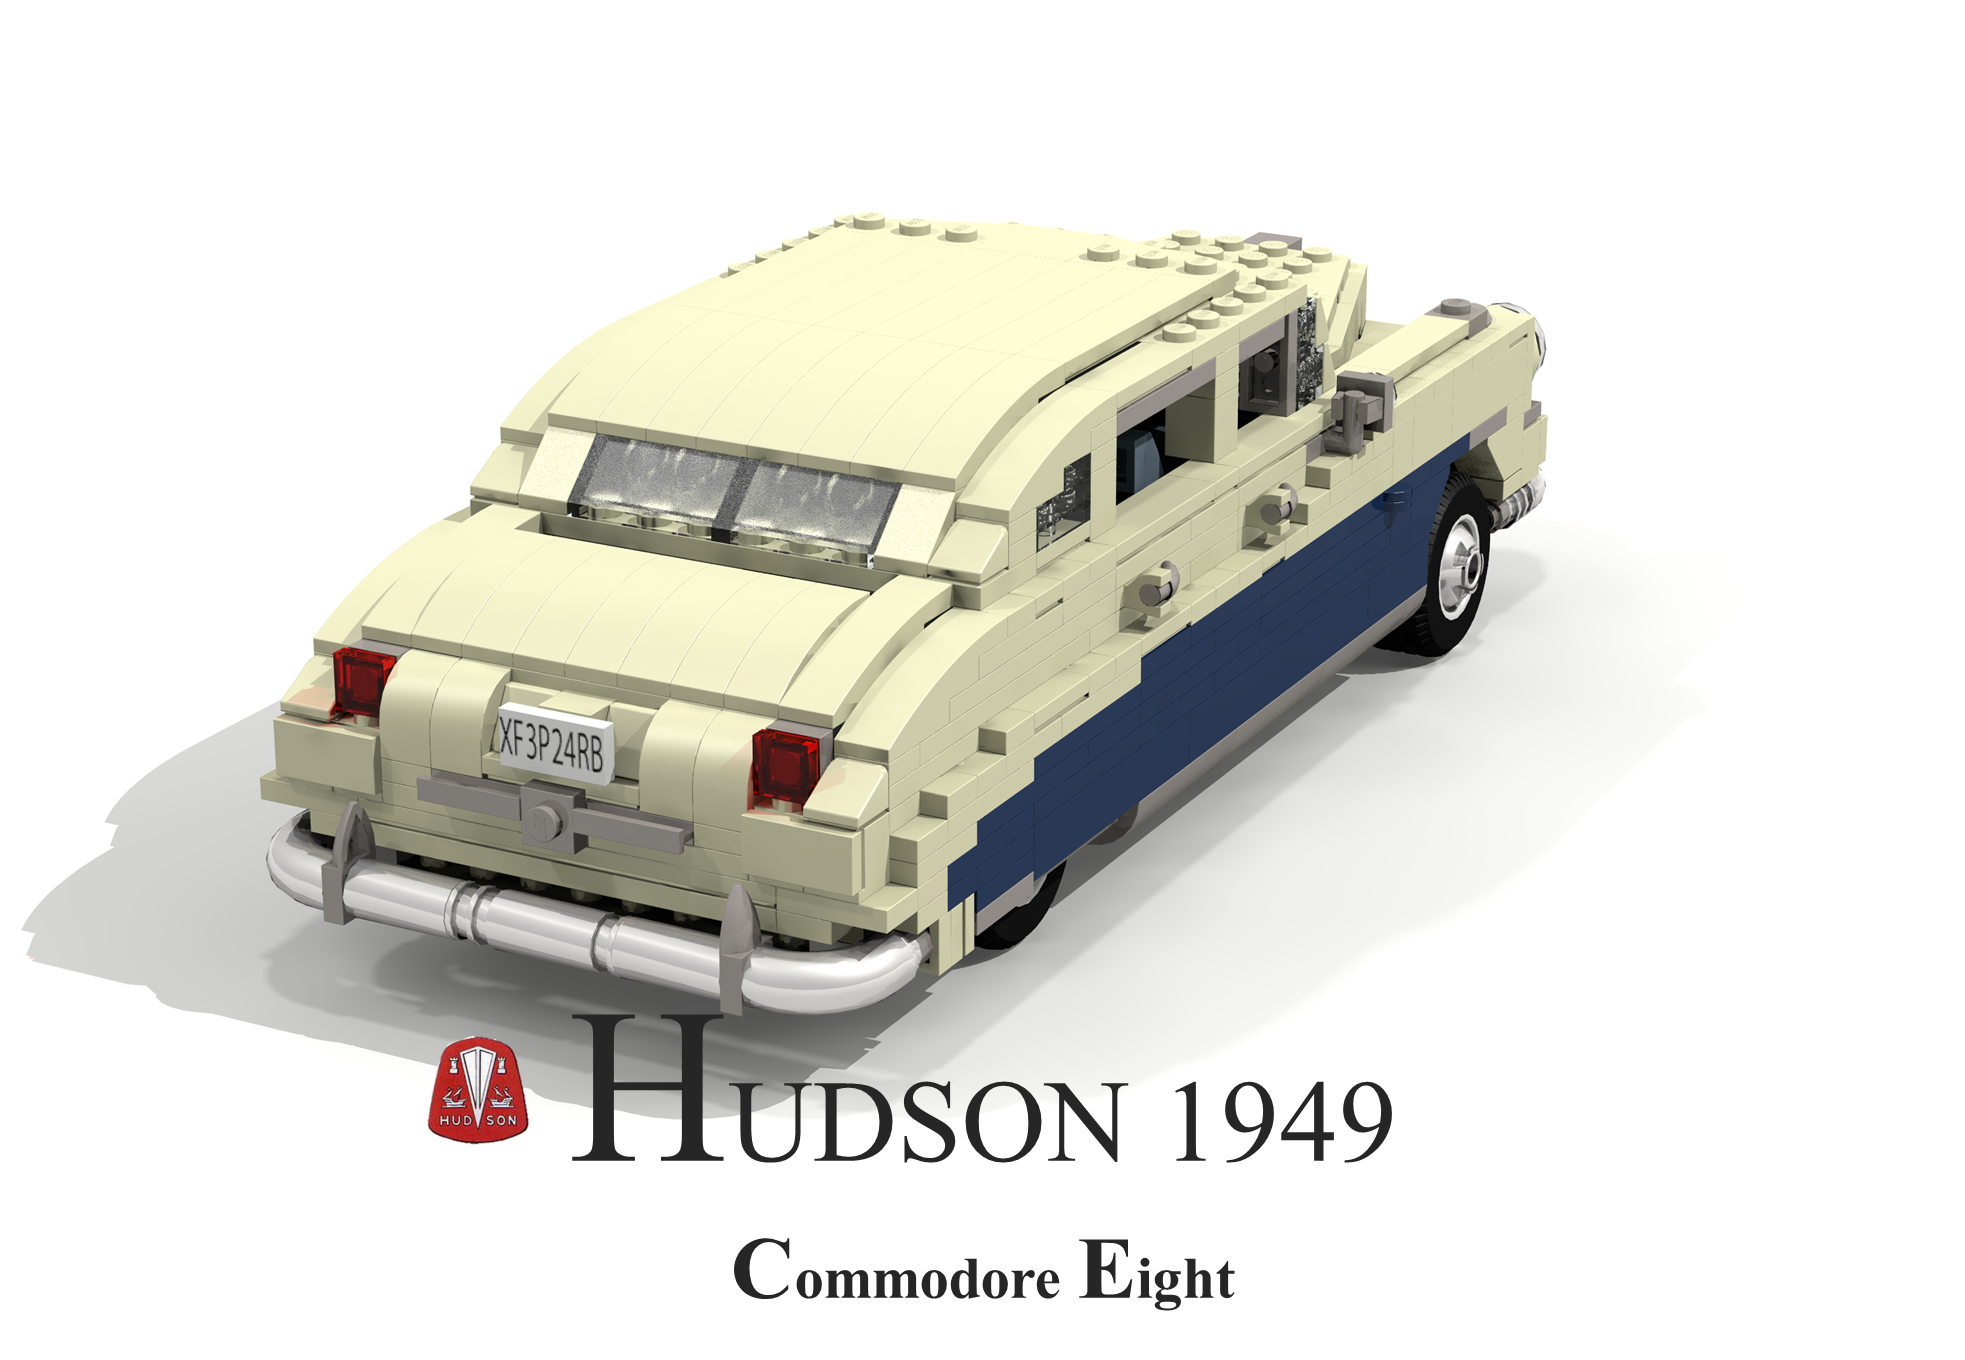 hudson_commodore_eight_1949_04.png